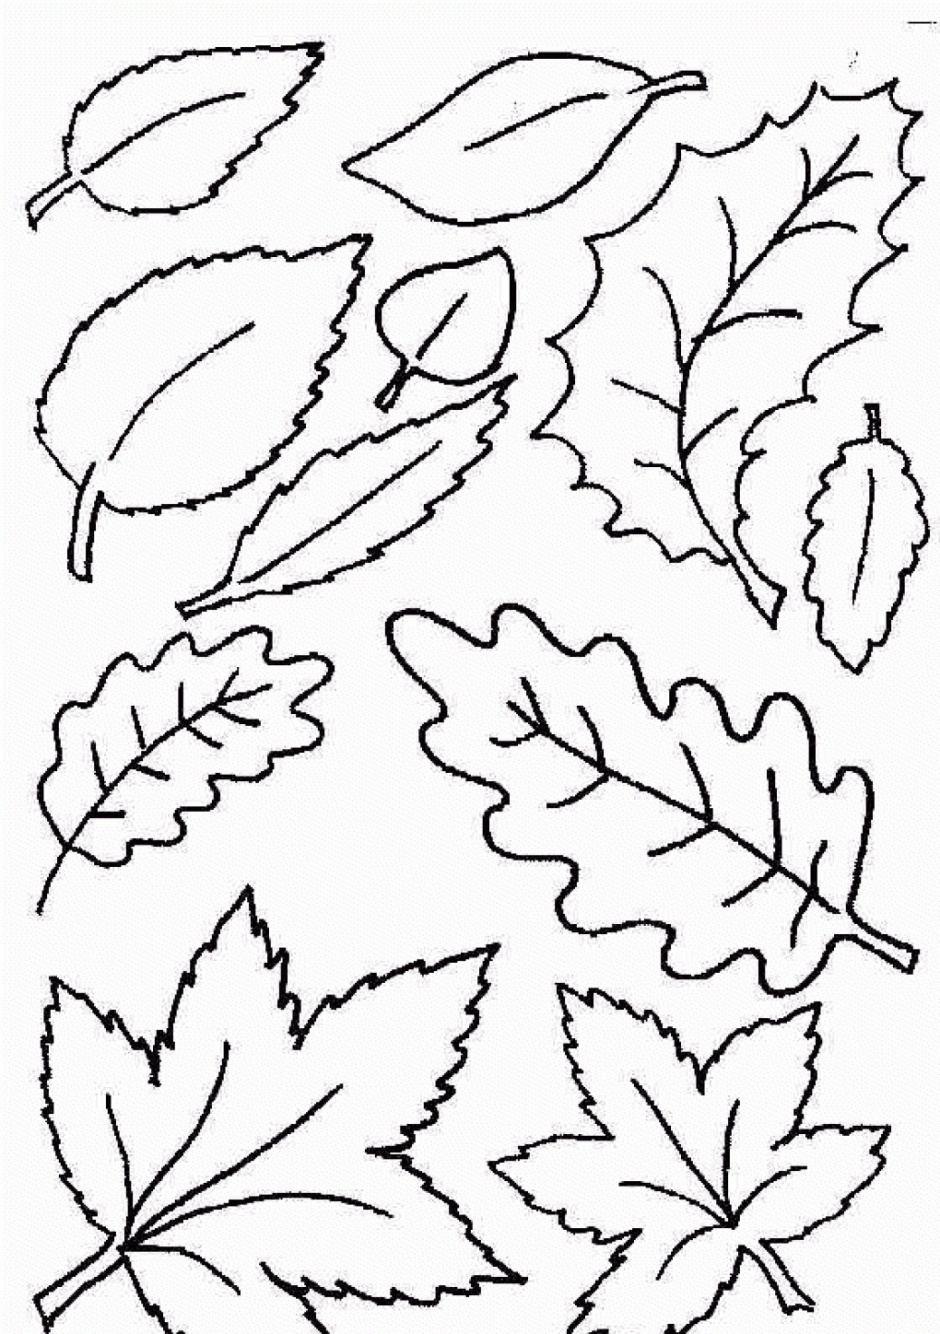 Coloring Ideas : Free Printable Leaf Coloring Pages Fall Leaves And - Free Printable Fall Leaves Coloring Pages